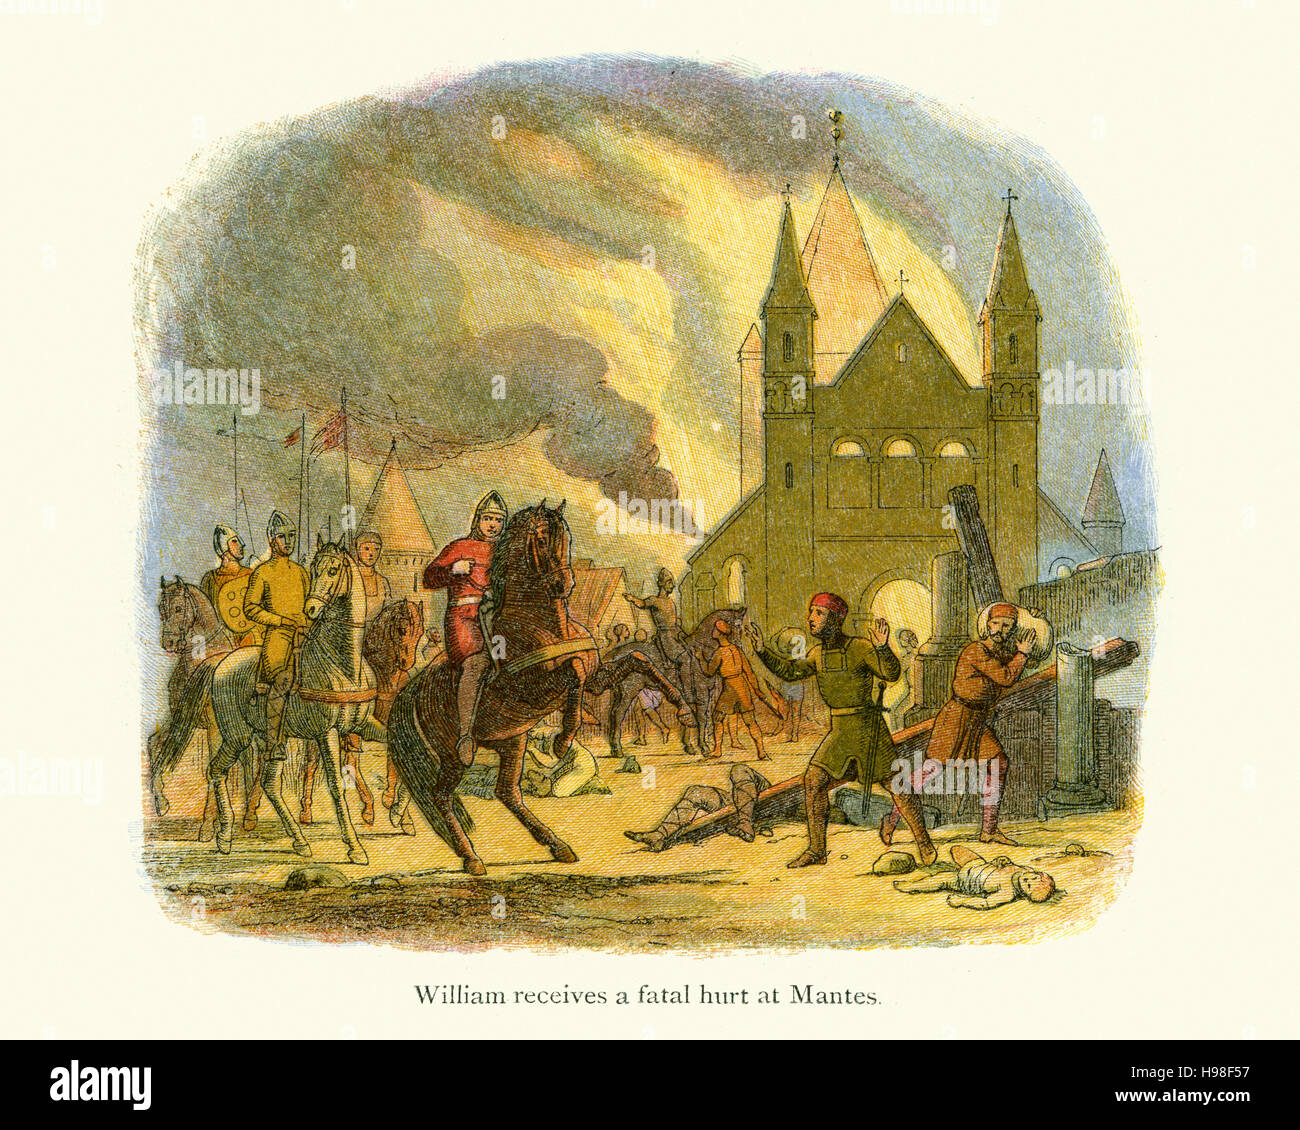 King William the Conqueror receiving a fatal wound at Mantes. In 1087 in France, William burned Mantes 50 km west - Stock Image